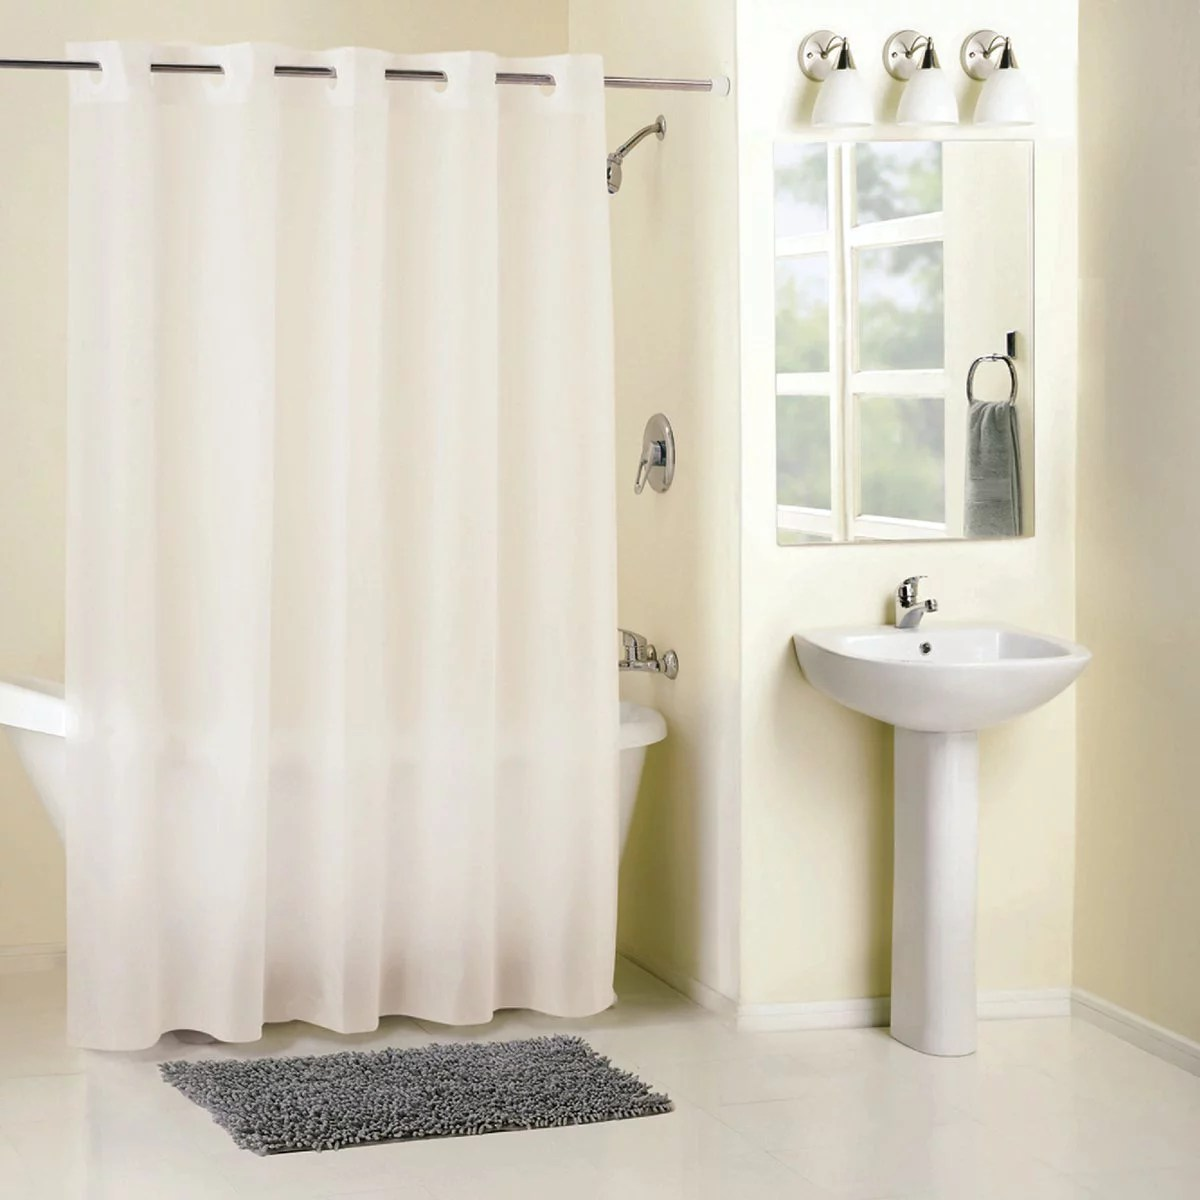 surefit 71 in x 74 in frost hookless shower curtain with liner rbh14fc844